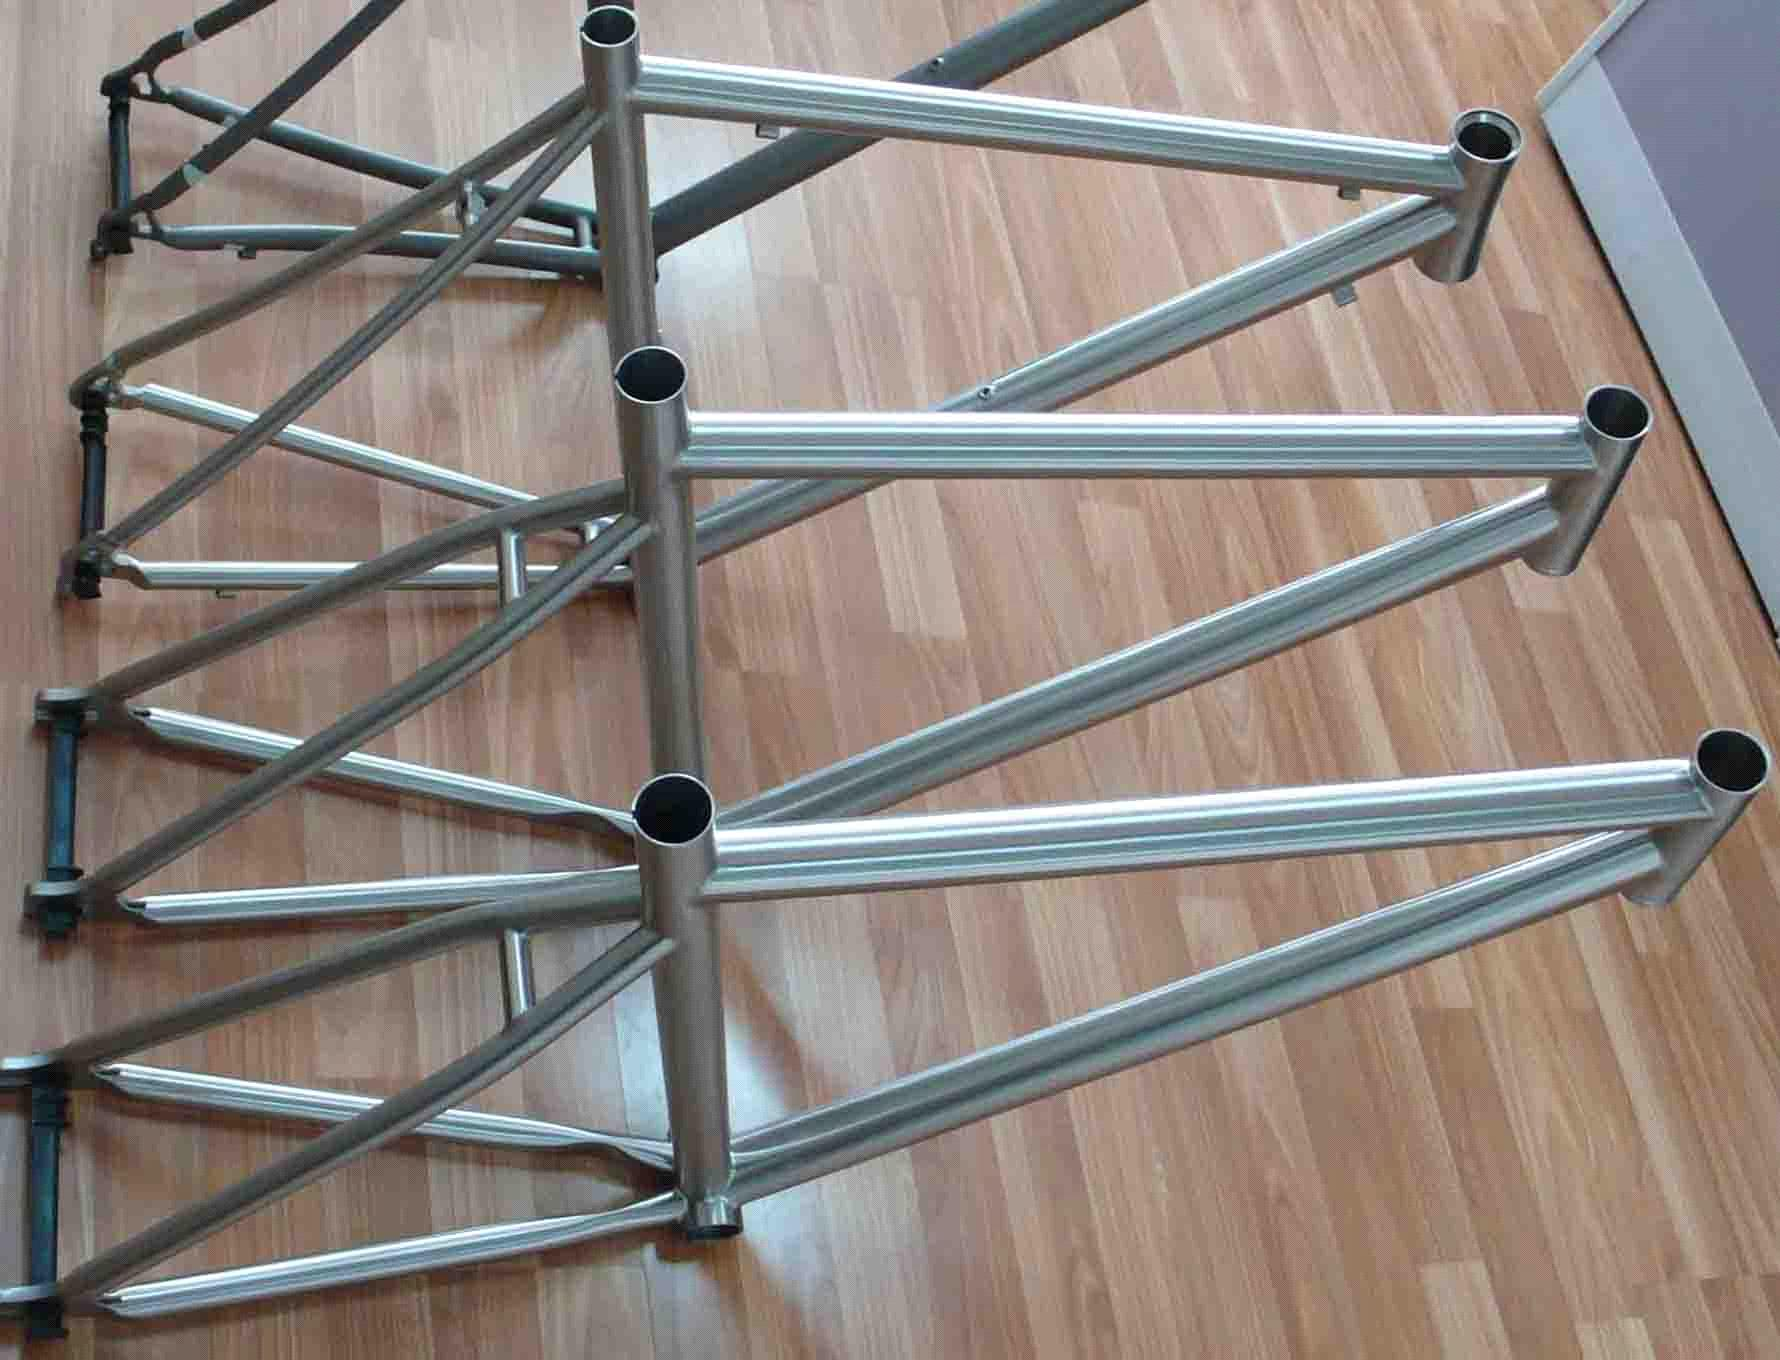 Titanium bicycle frame&parts